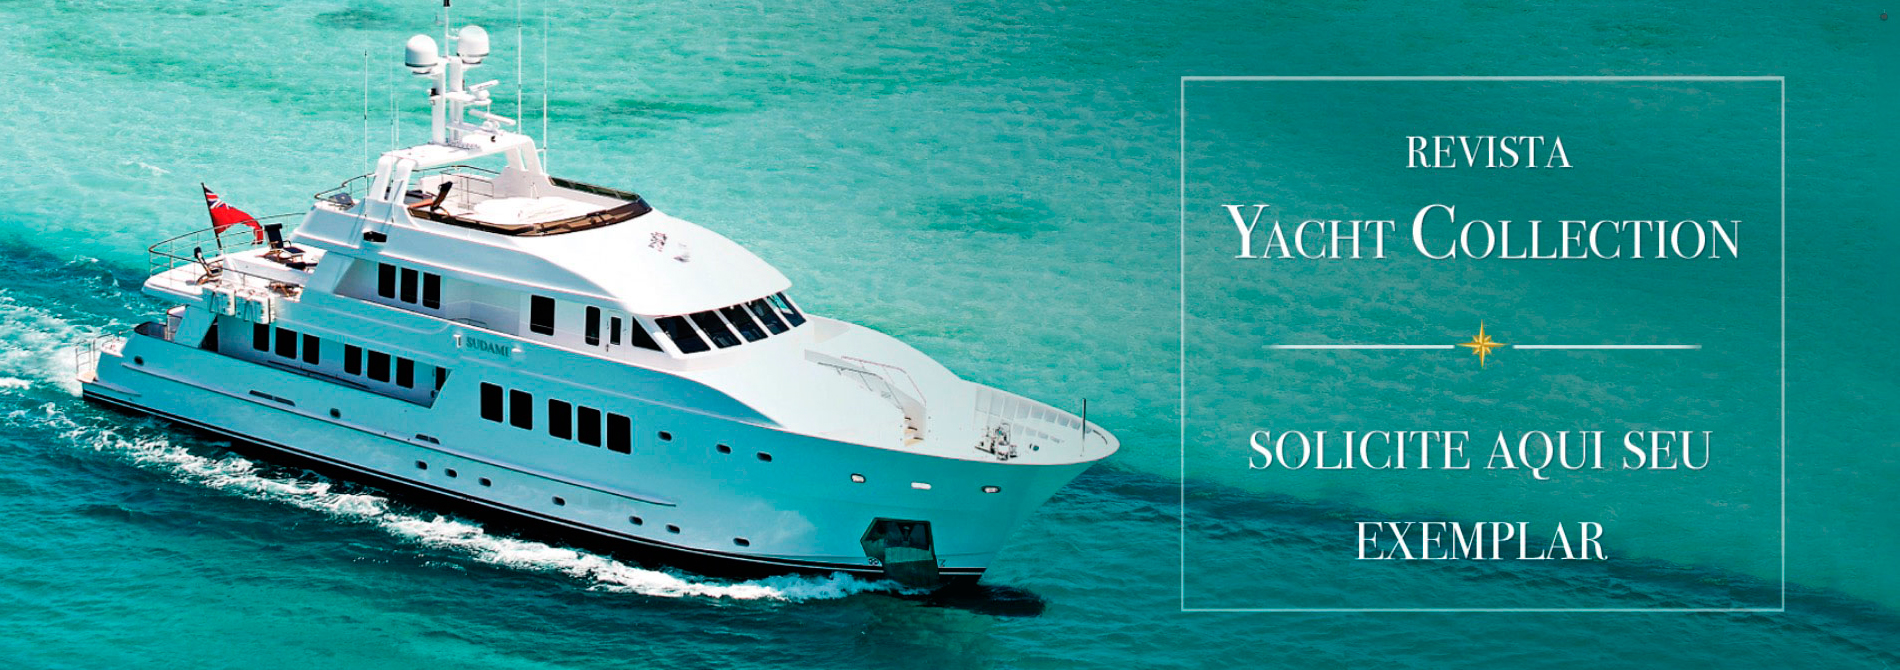 Yachtcollection